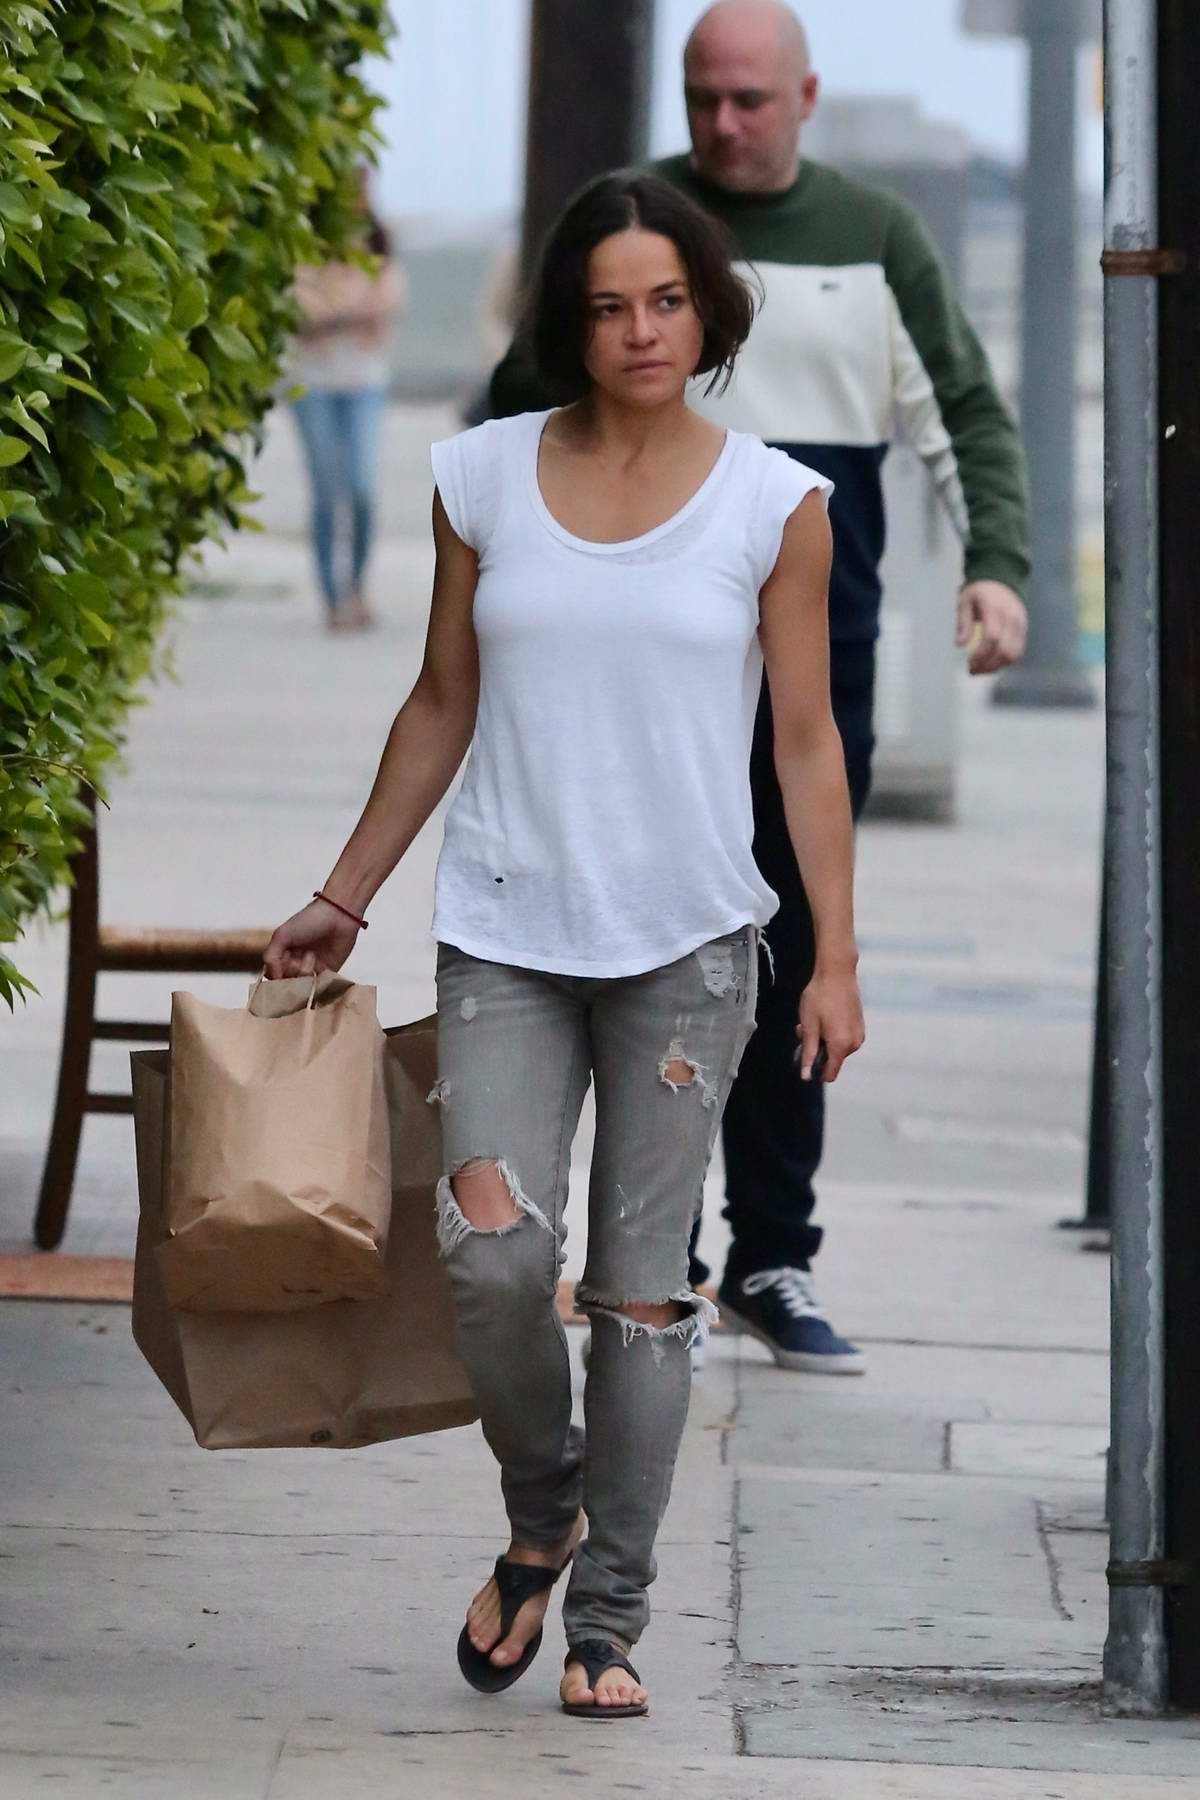 Michelle Rodriguez steps out make-up free for to-go food at Giorgio Baldi in Santa Monica, California